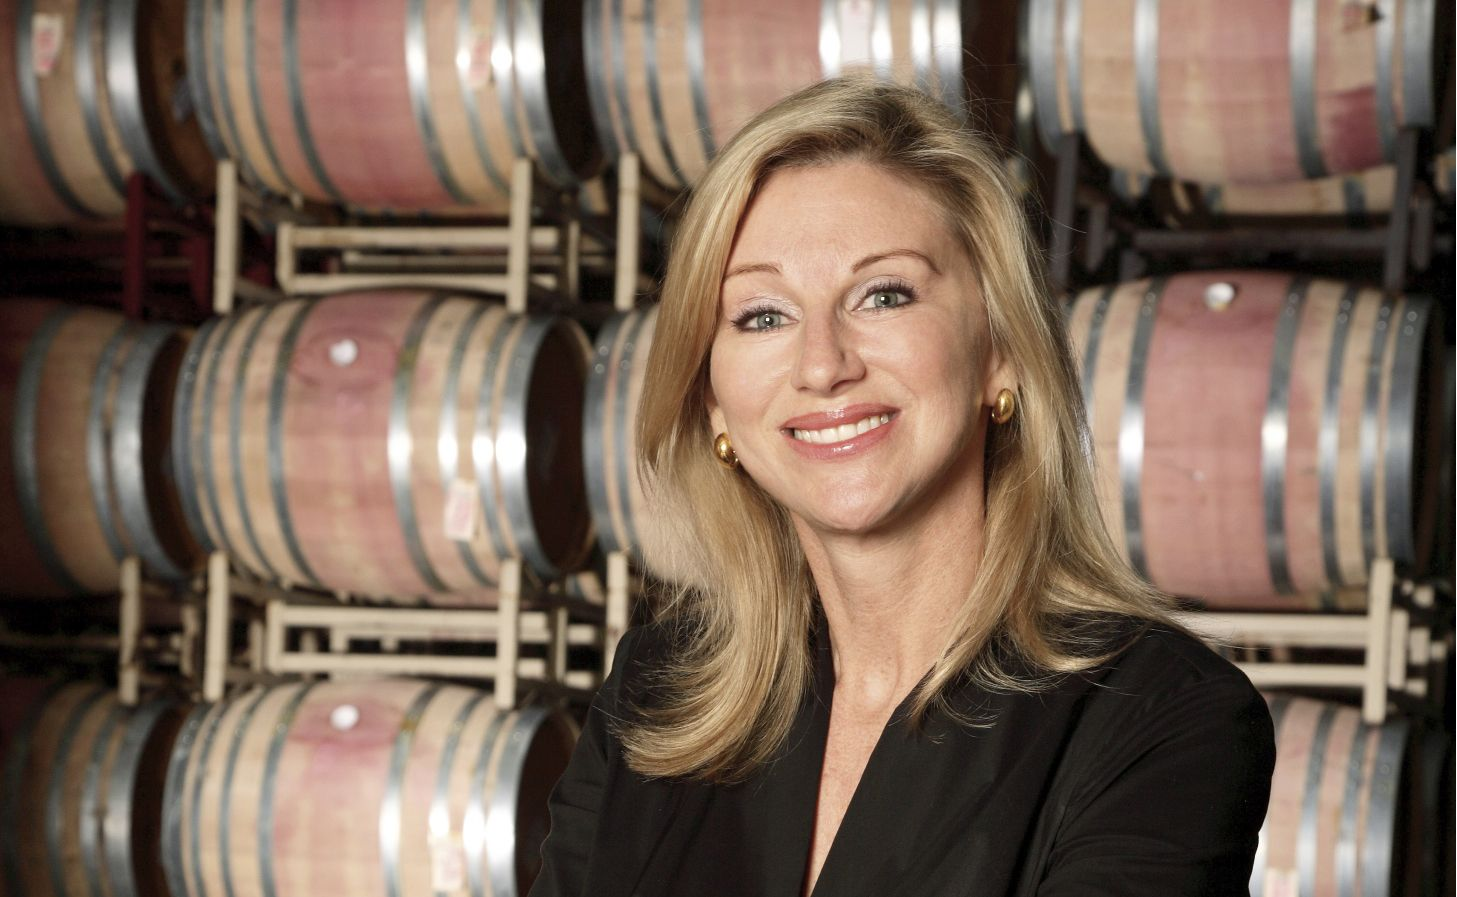 Raise A Glass To The Women Of Wine This Week